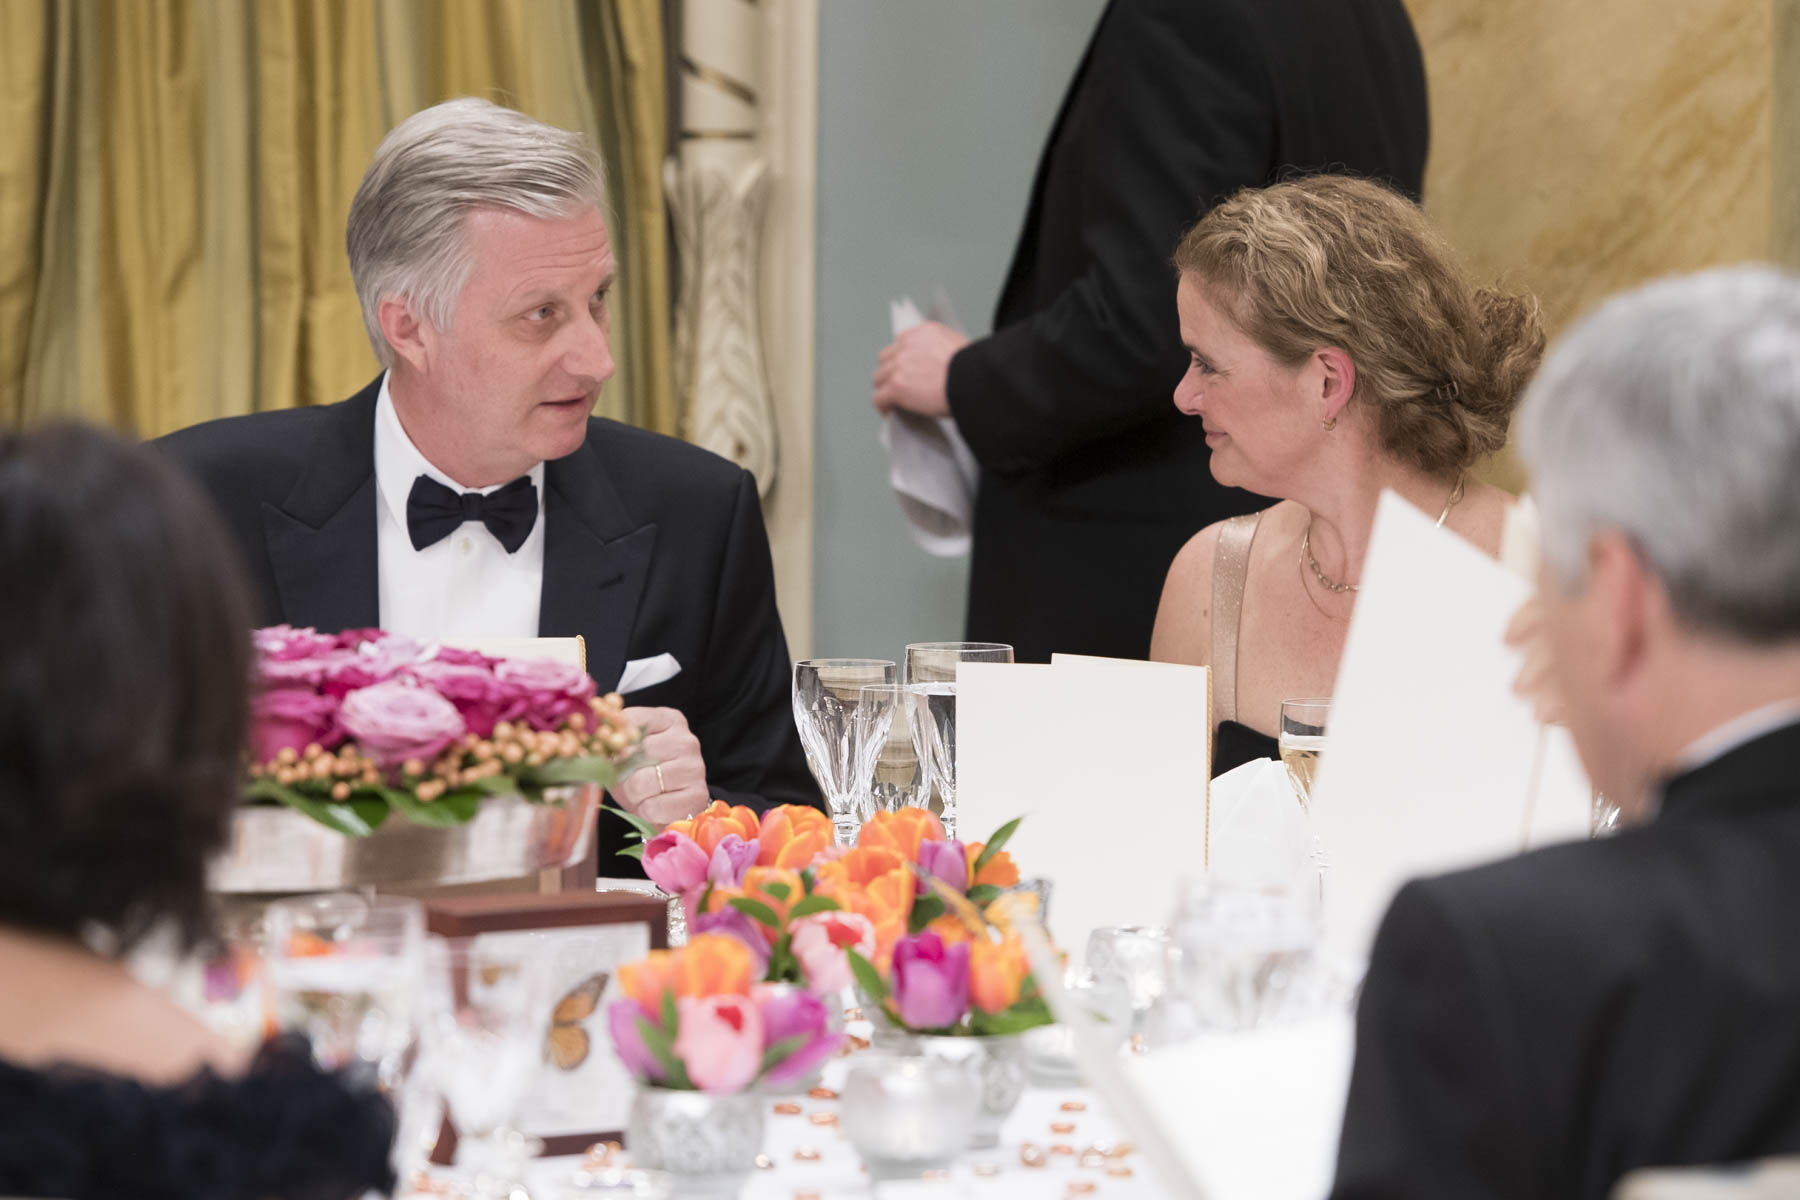 In the evening, the Governor General hosted a State dinner at Rideau Hall in honour of Their Majesties' visit to Canada.